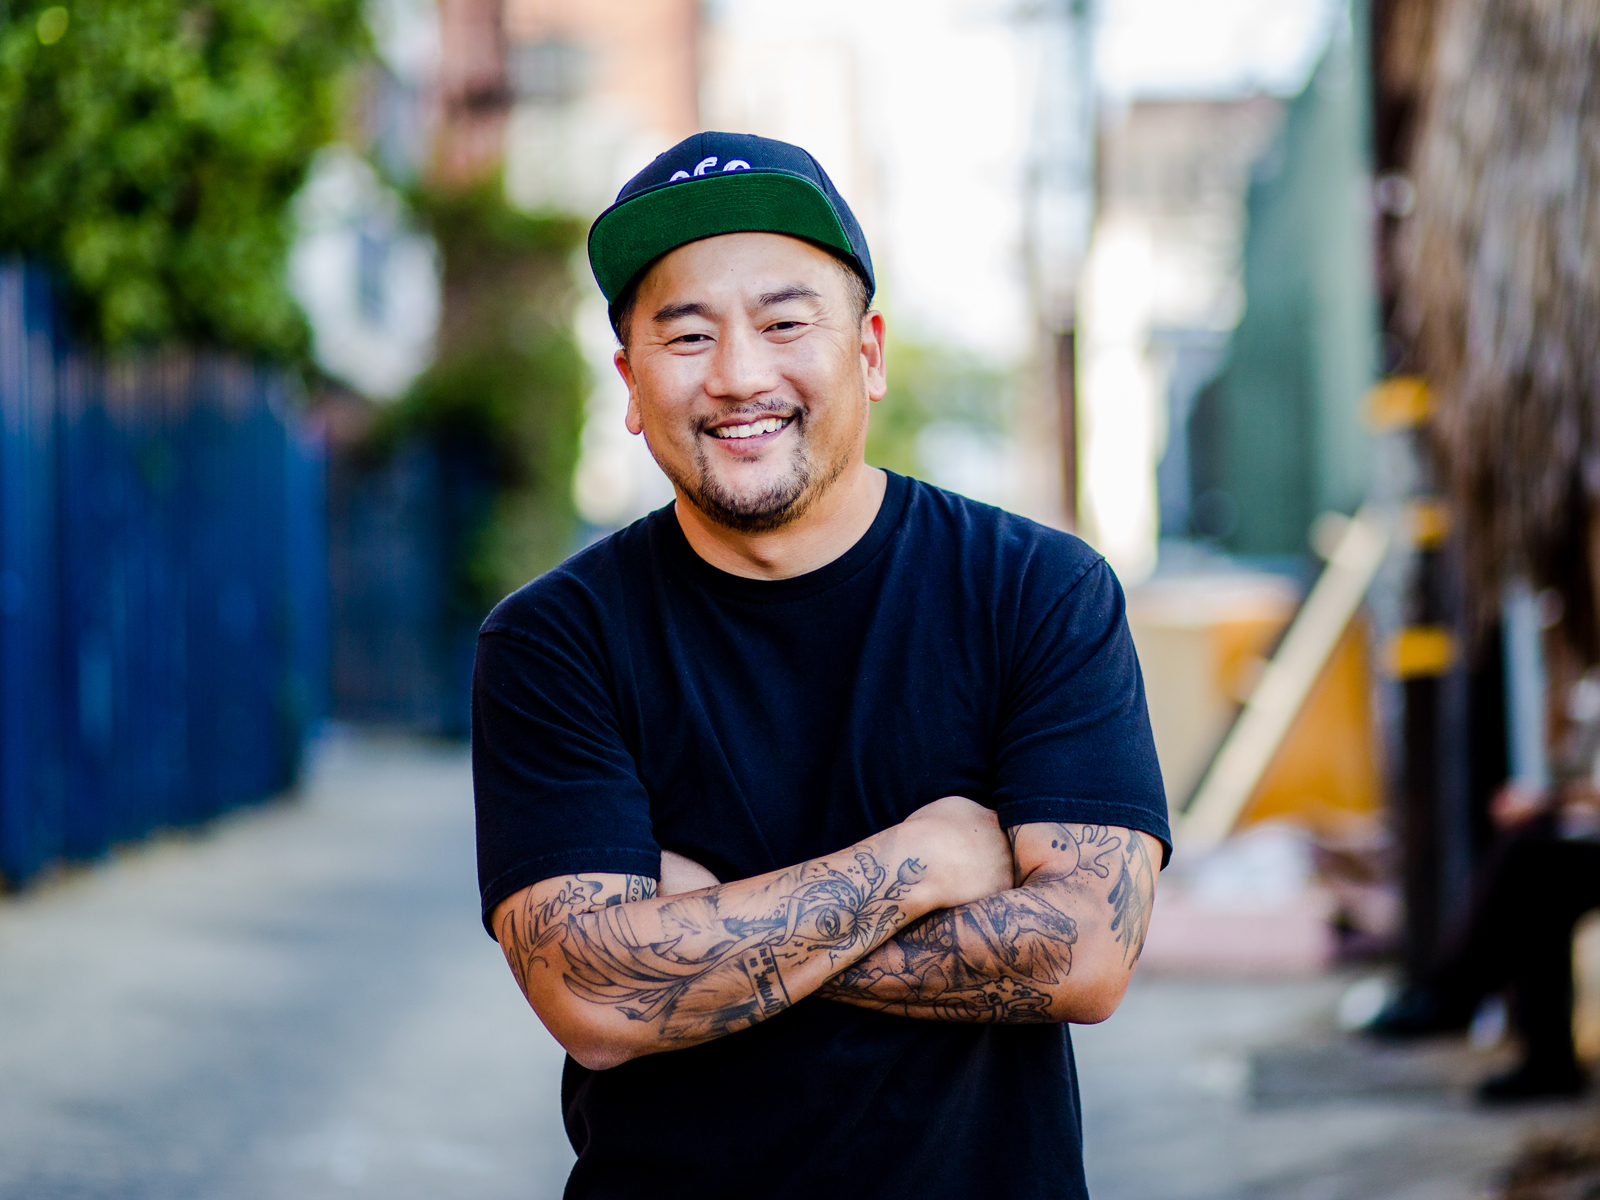 roy-choi-cheetos-restaurant-FT-BLOG0918.jpg